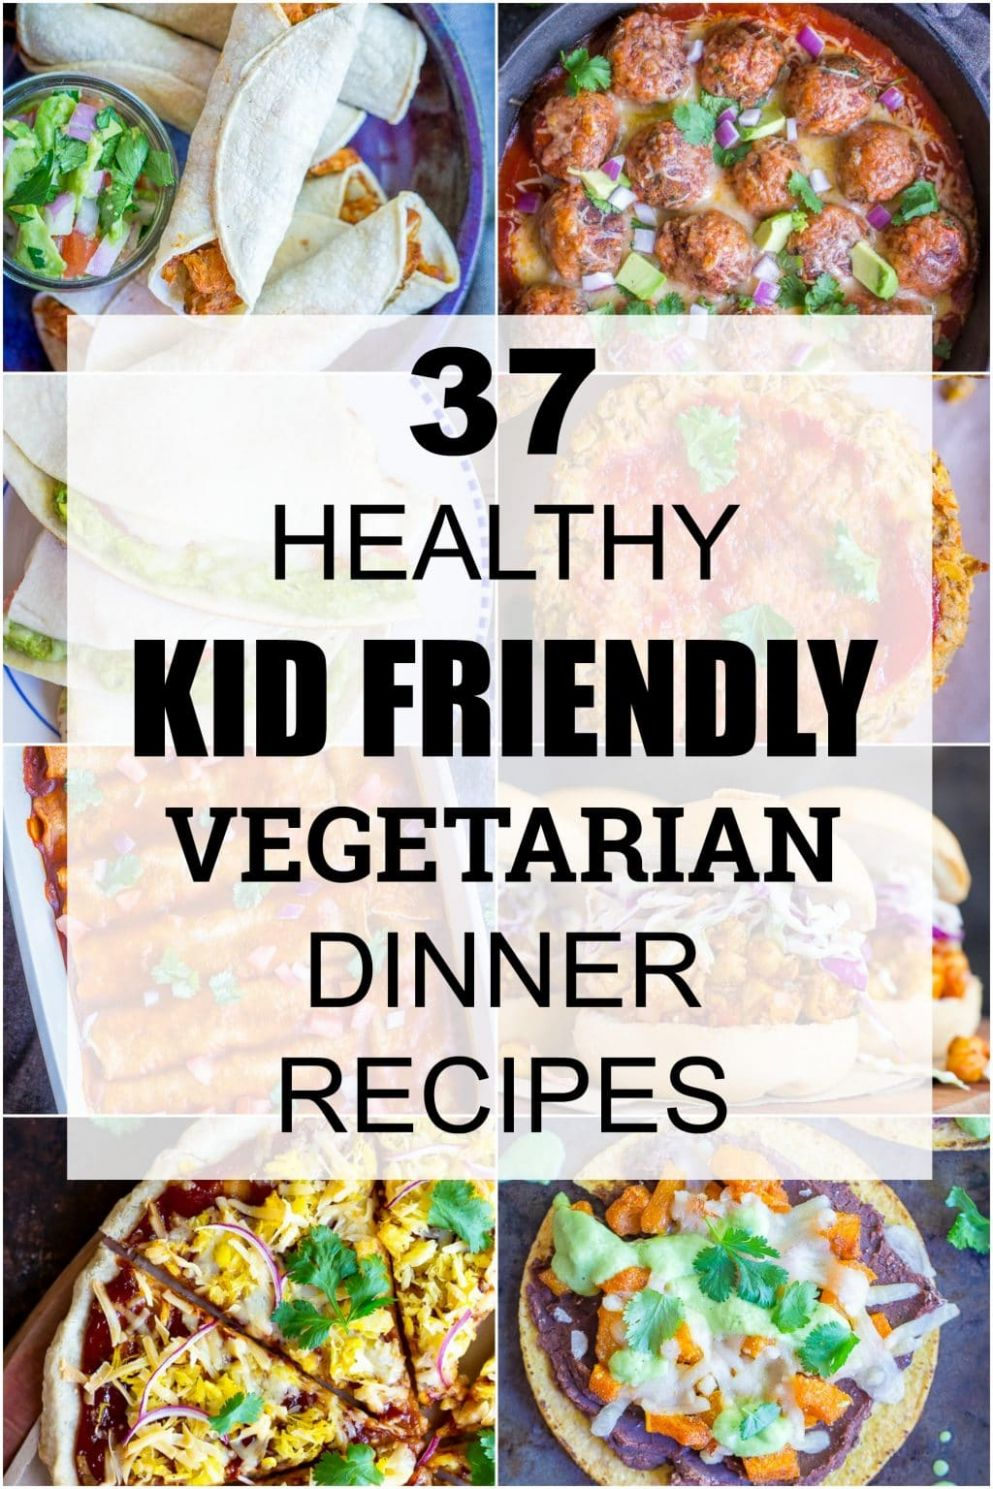 12 Healthy Kid Friendly Vegetarian Dinner Recipes - She Likes Food